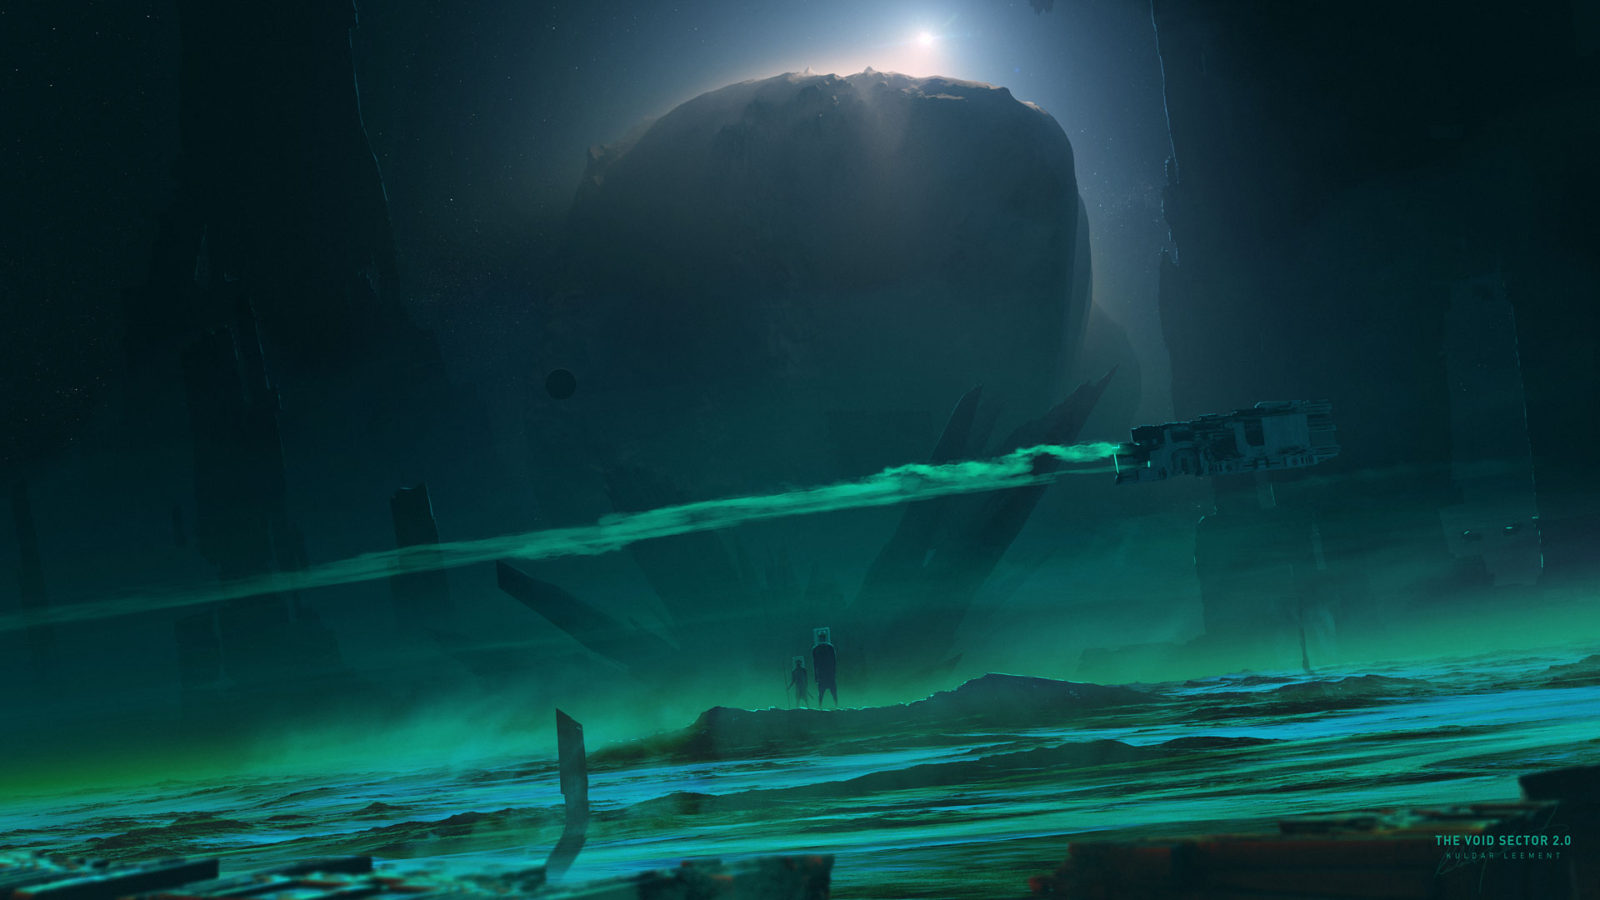 Kuldar Leement - The void sector 2.0